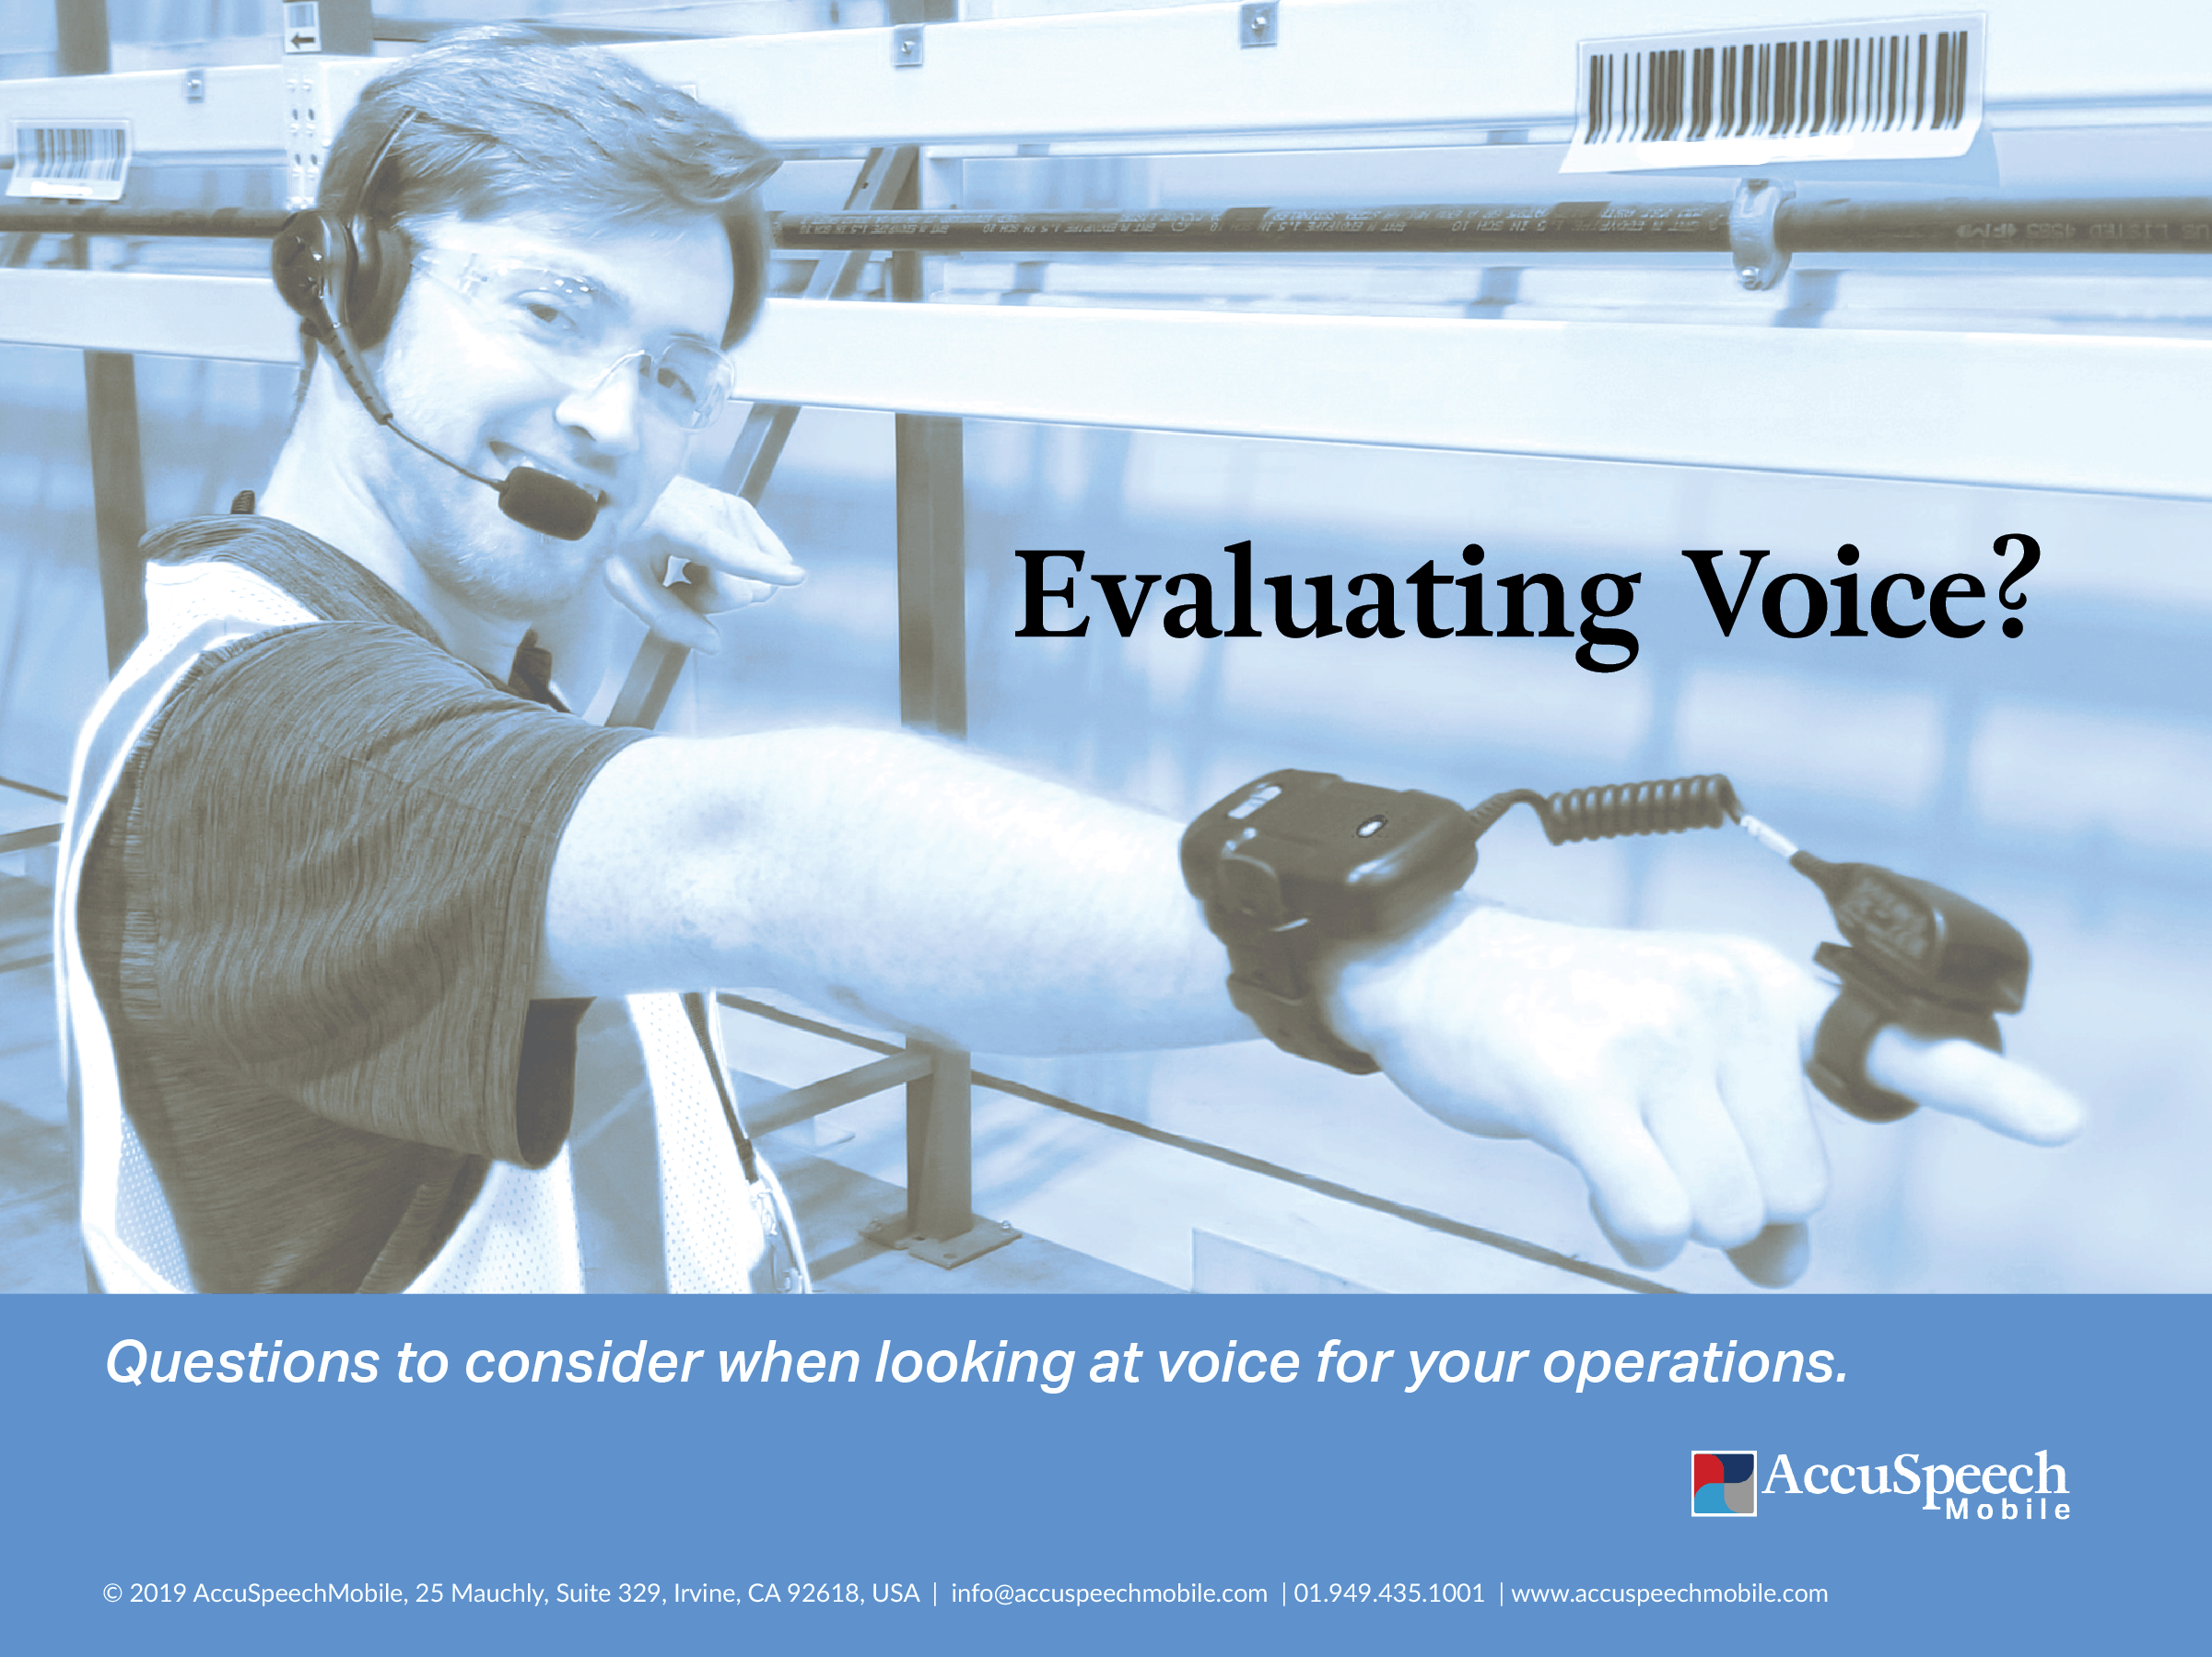 Evaluating Voice Cover Image